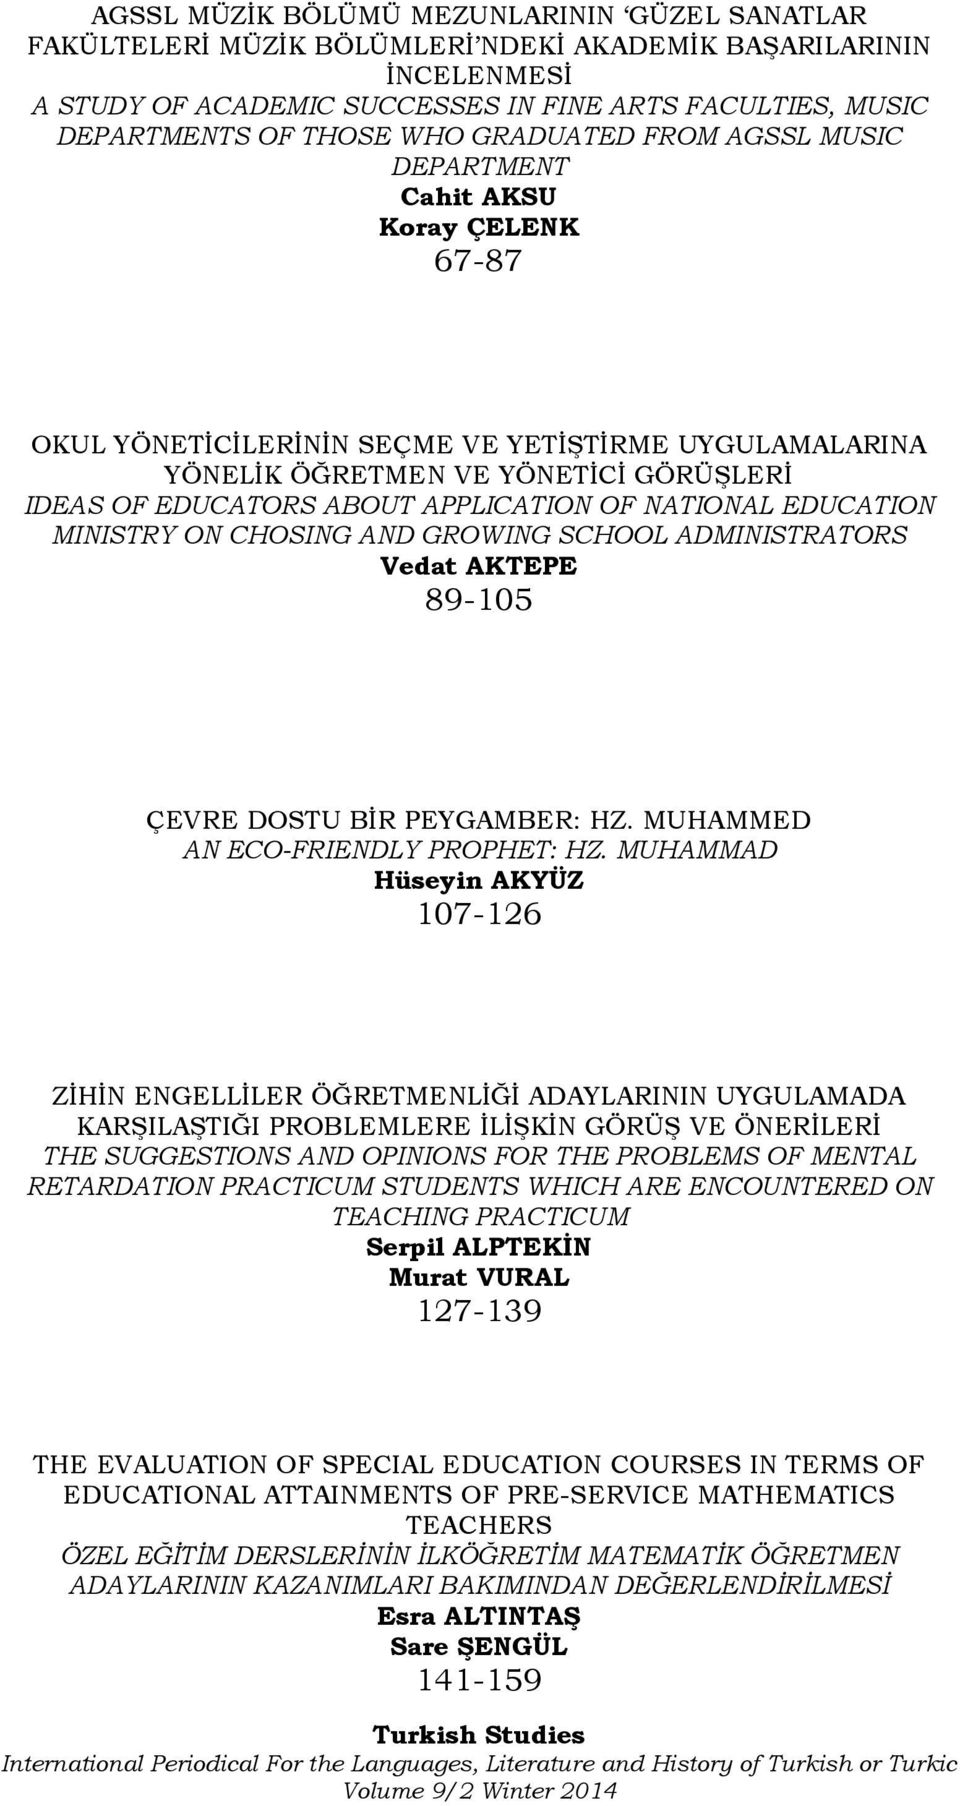 APPLICATION OF NATIONAL EDUCATION MINISTRY ON CHOSING AND GROWING SCHOOL ADMINISTRATORS Vedat AKTEPE 89-105 ÇEVRE DOSTU BİR PEYGAMBER: HZ. MUHAMMED AN ECO-FRIENDLY PROPHET: HZ.